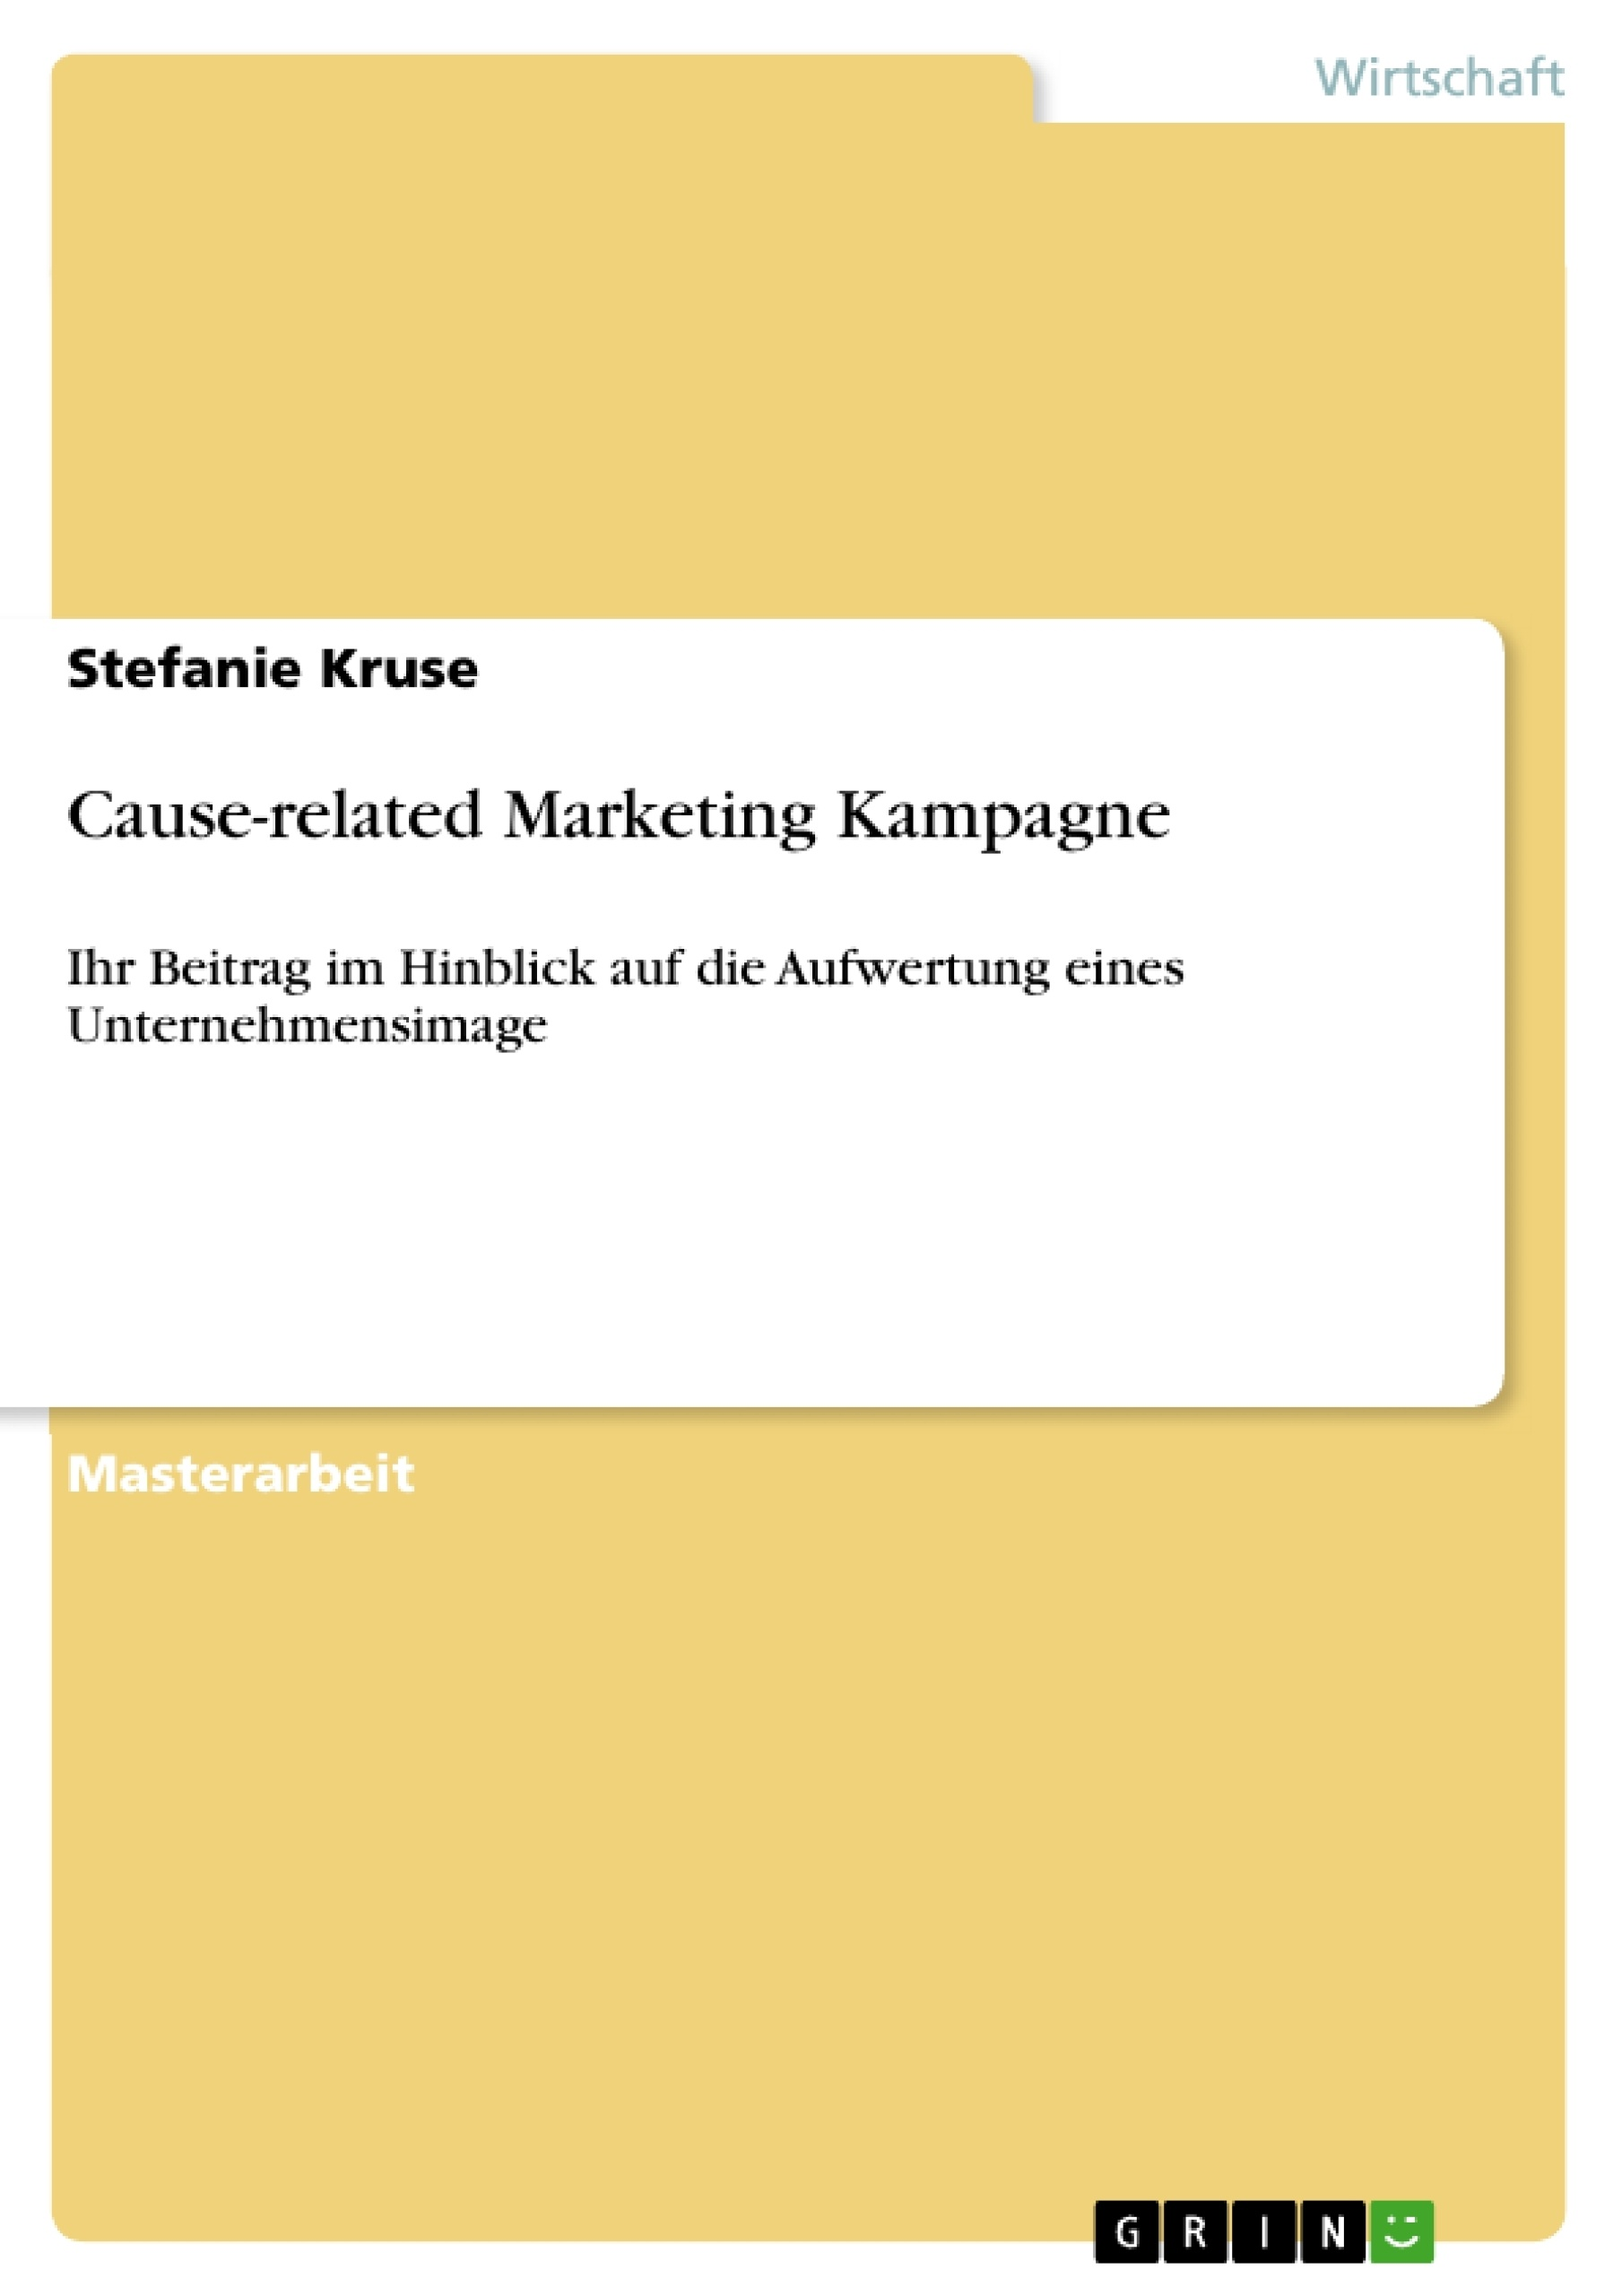 Titel: Cause-related Marketing Kampagne